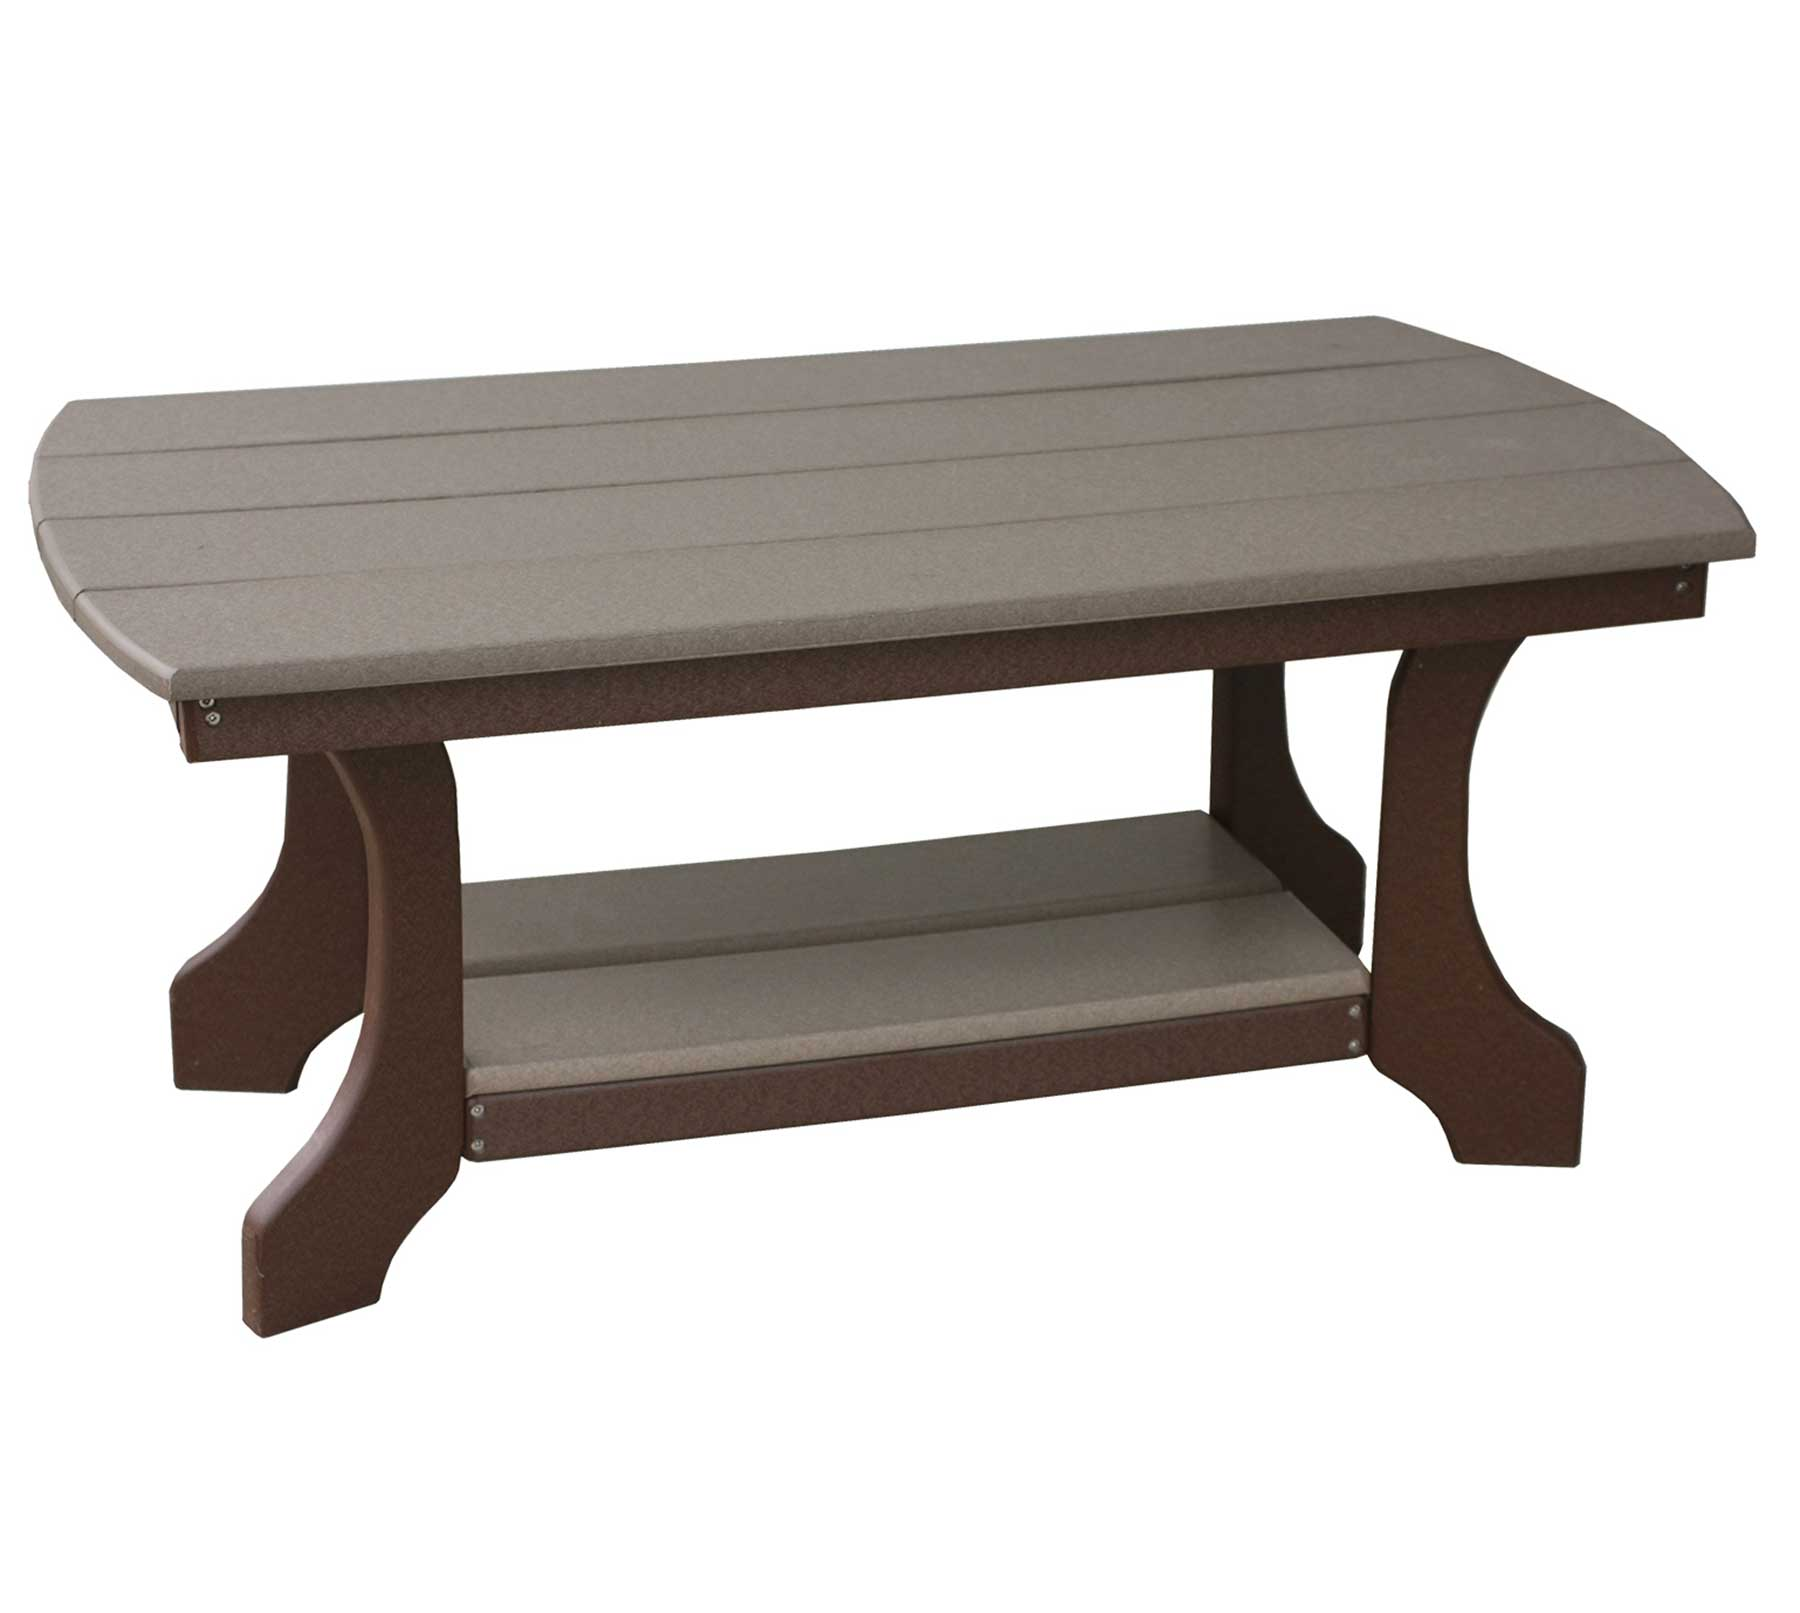 The Coffee Table From Signature Fine Furnishings